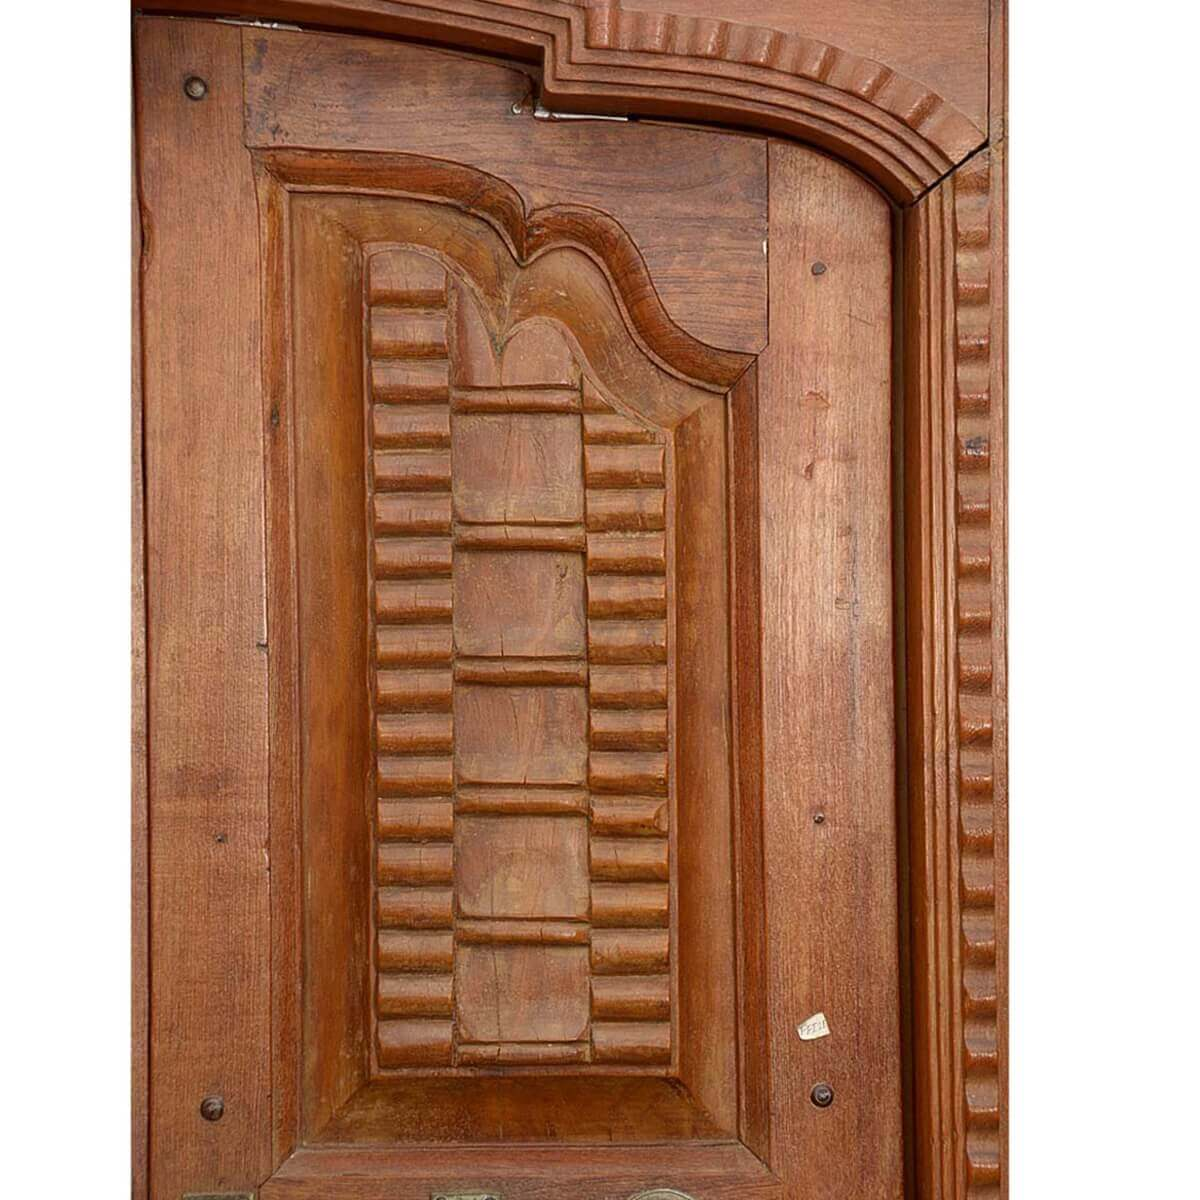 Outstanding 19th century antique reclaimed wood indian door for Old wood doors salvaged